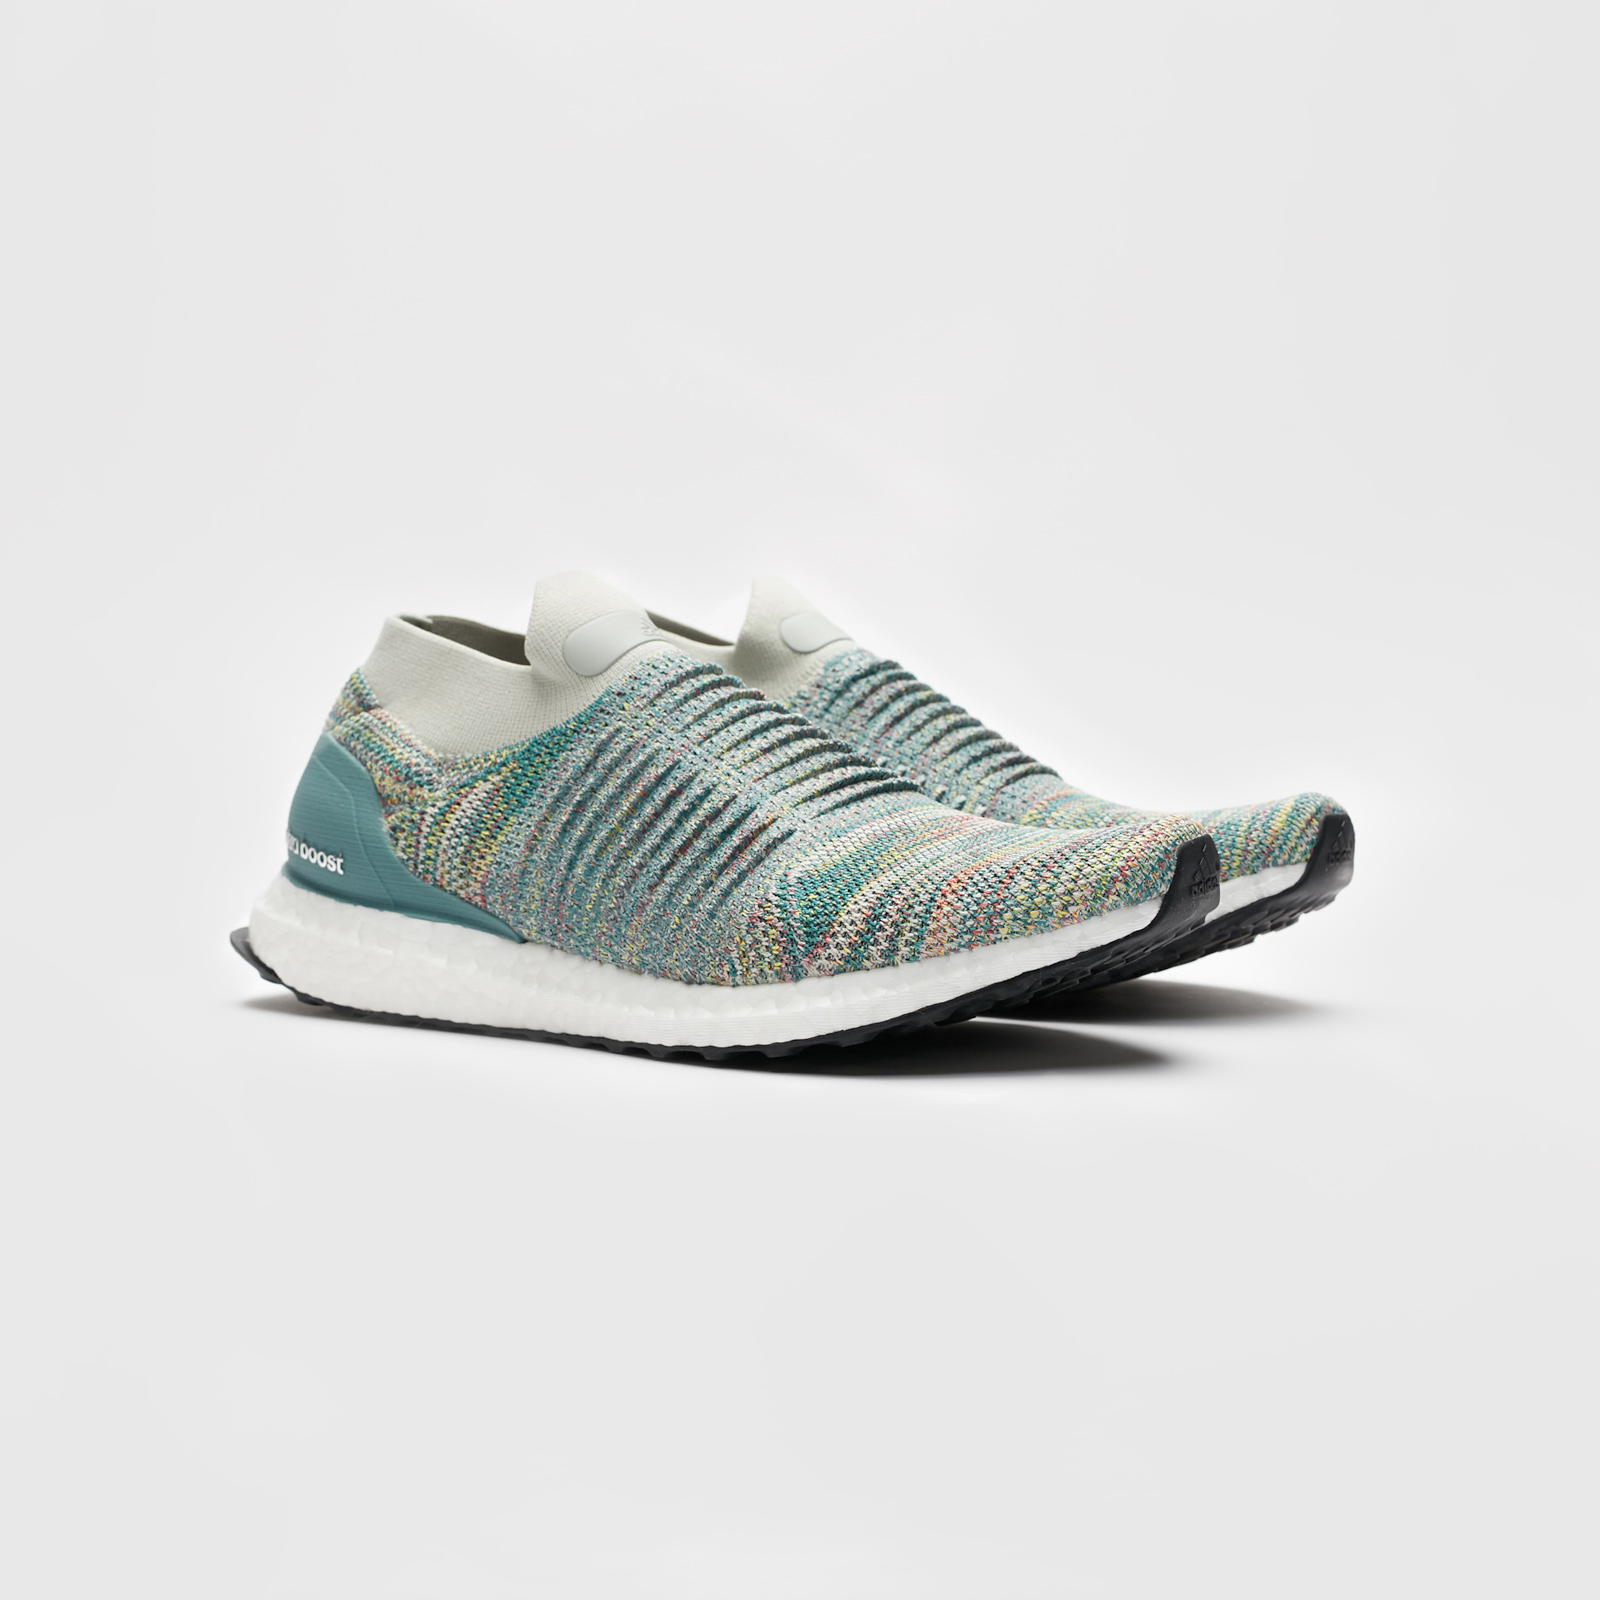 57f95518668 ireland adidas ultra boost laceless performance 1cad7 35090